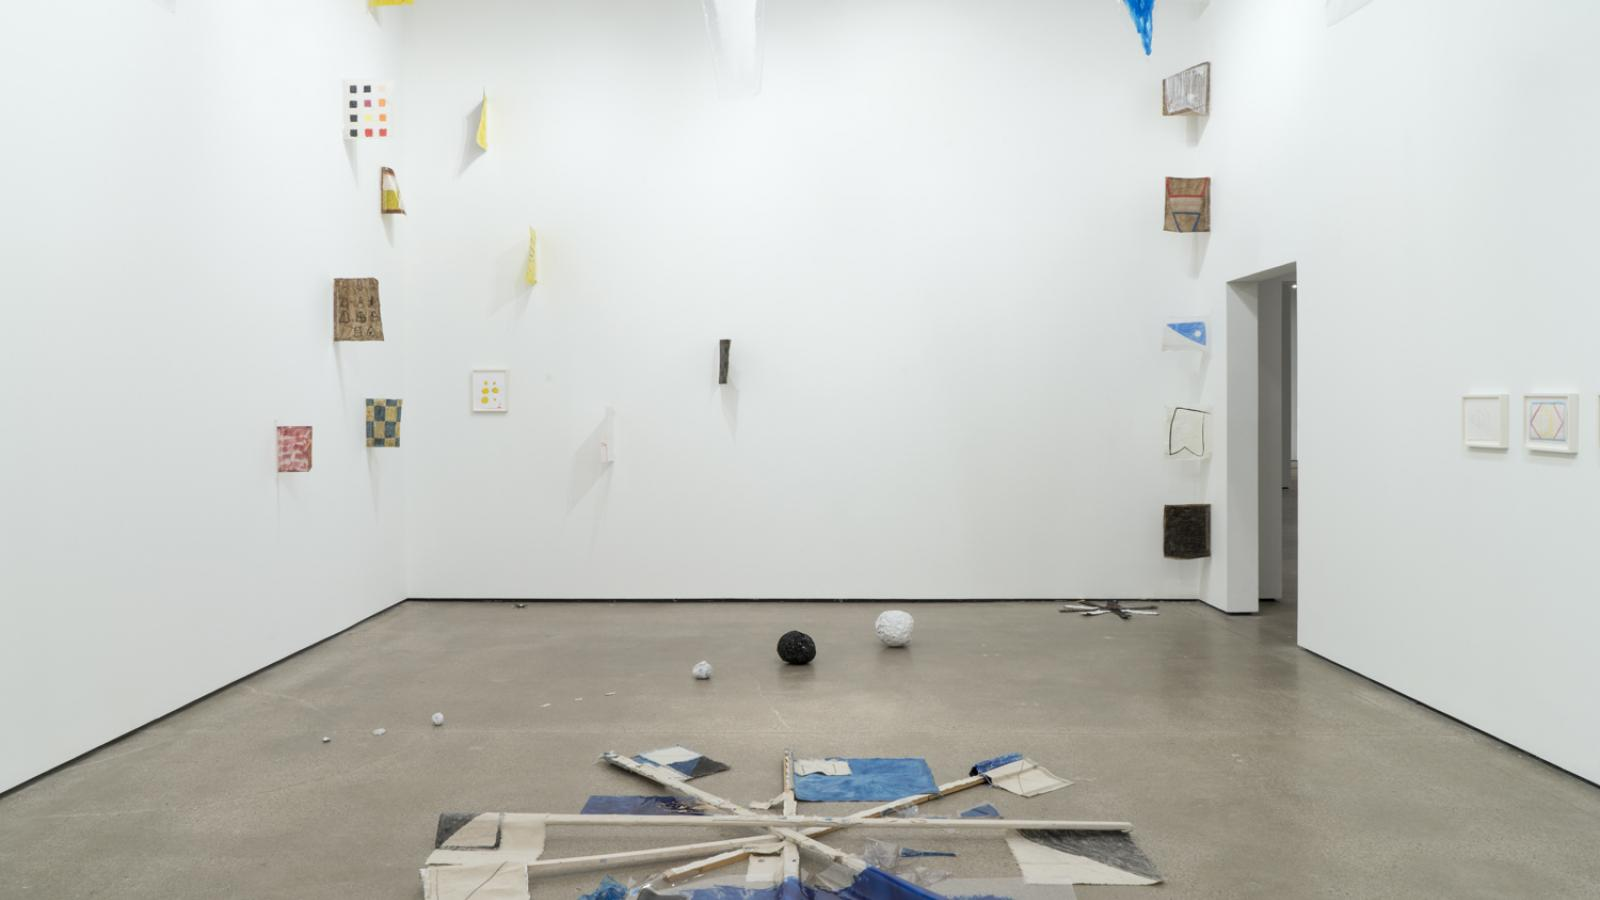 Suzanne Silver's artwork Codes and Contingencies